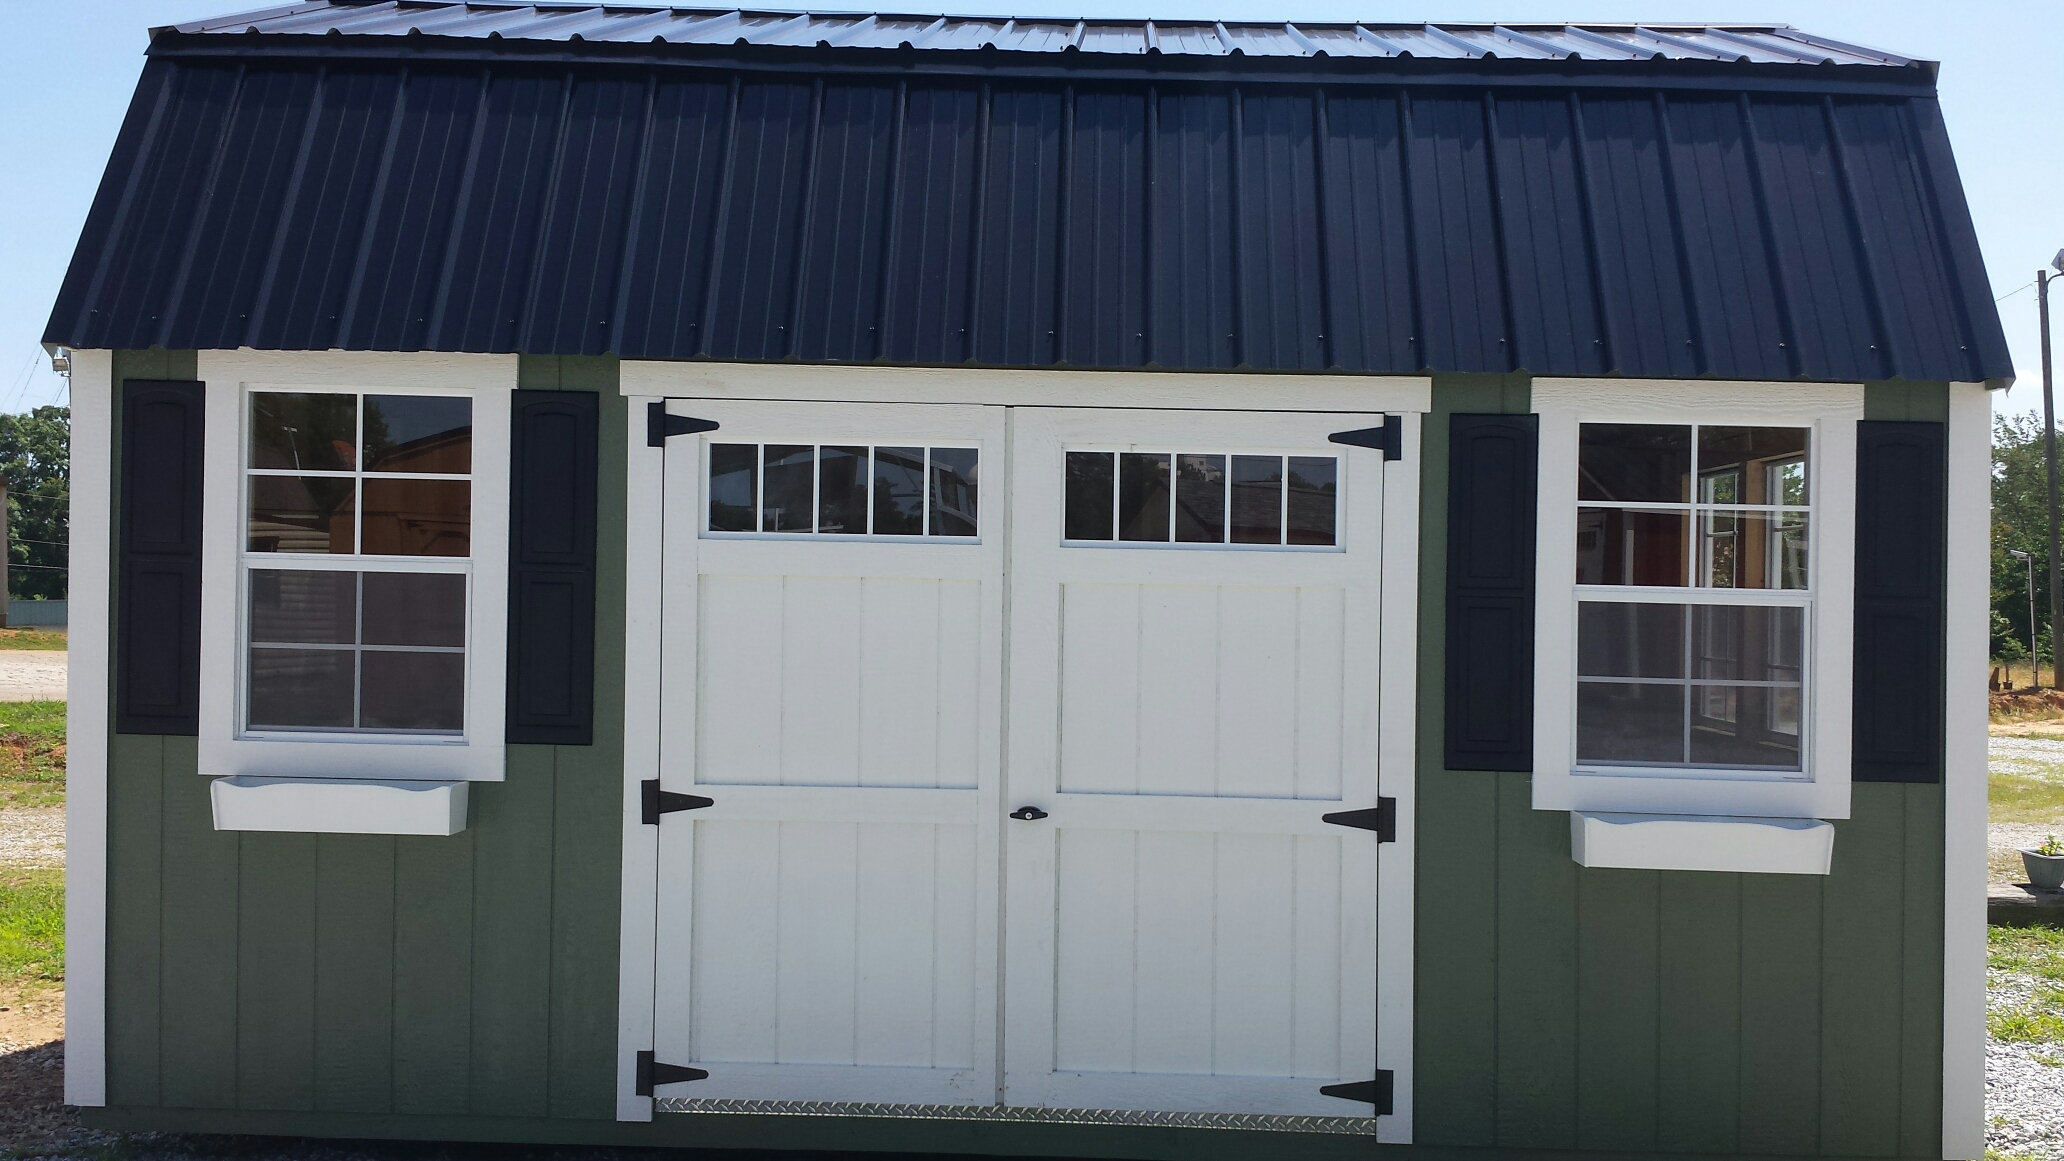 Superieur Twin Lakes Storage Solutions Of Anderson 1433 Pearman Dairy Rd, Anderson, SC  29625   YP.com